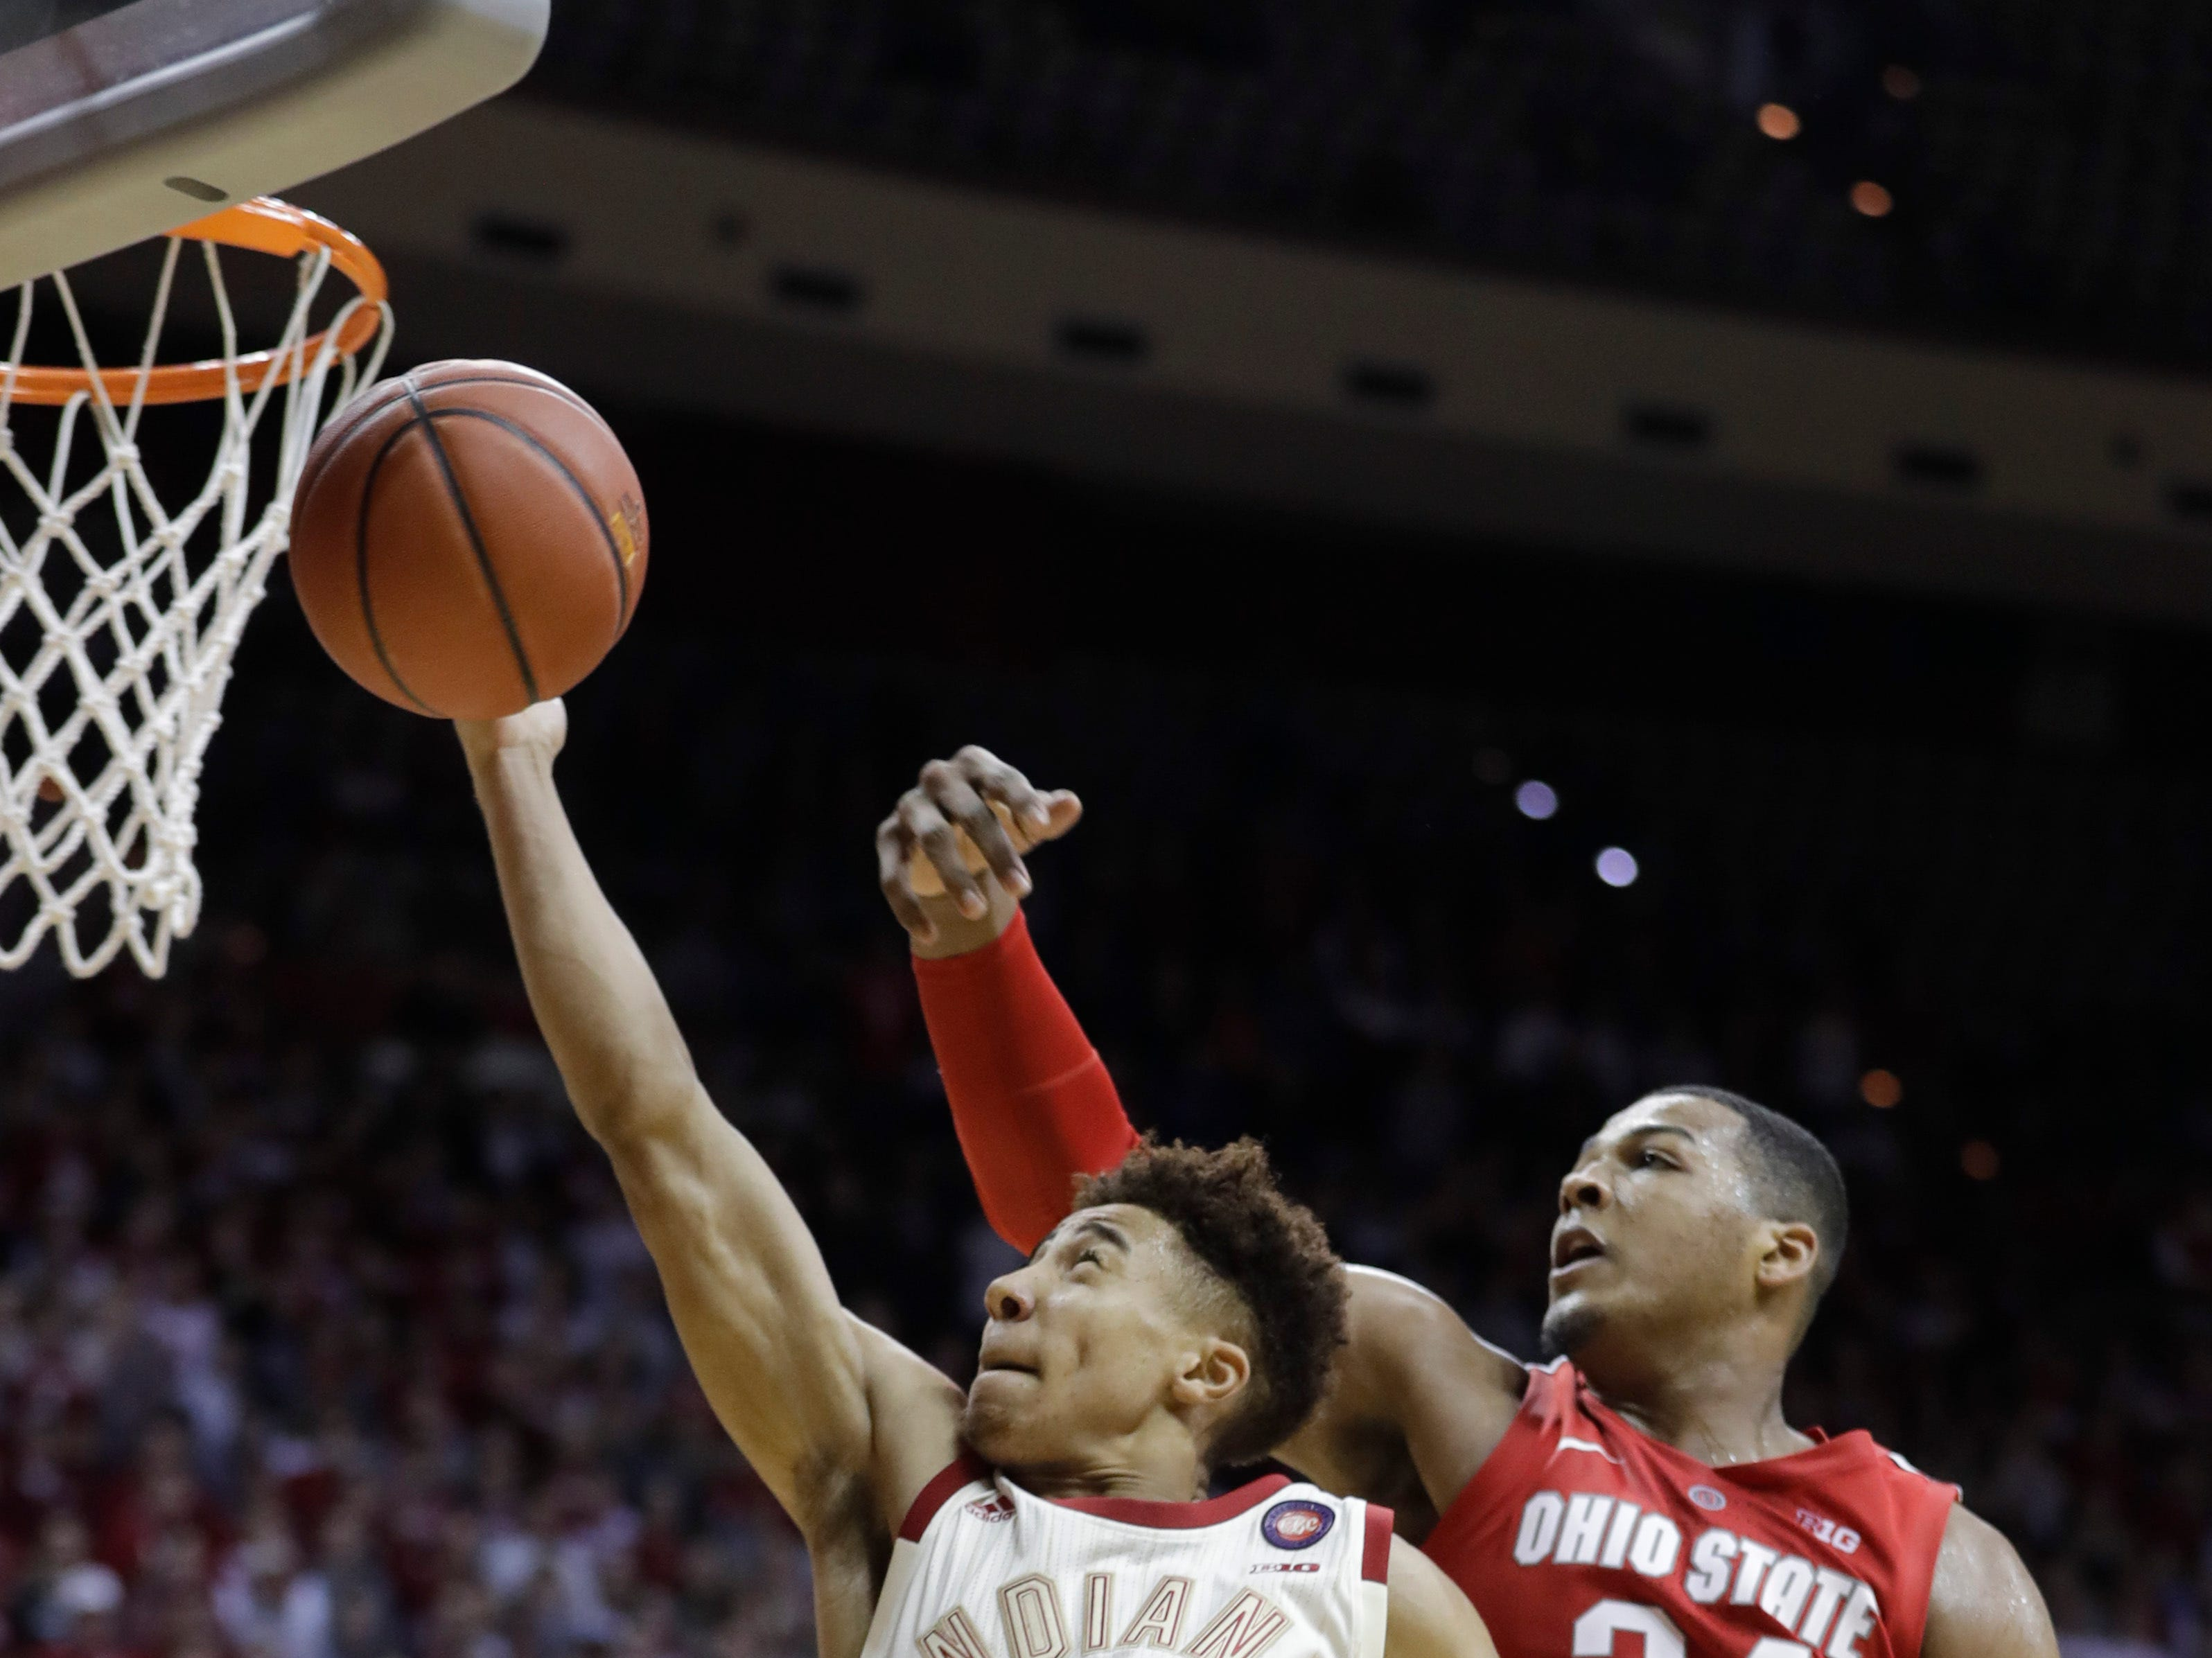 Indiana's Rob Phinisee (10) has his shot blocked by Ohio State's Kaleb Wesson (34) during the second half of an NCAA college basketball game, Sunday, Feb. 10, 2019, in Bloomington, Ind. Ohio State won 55-52. (AP Photo/Darron Cummings)